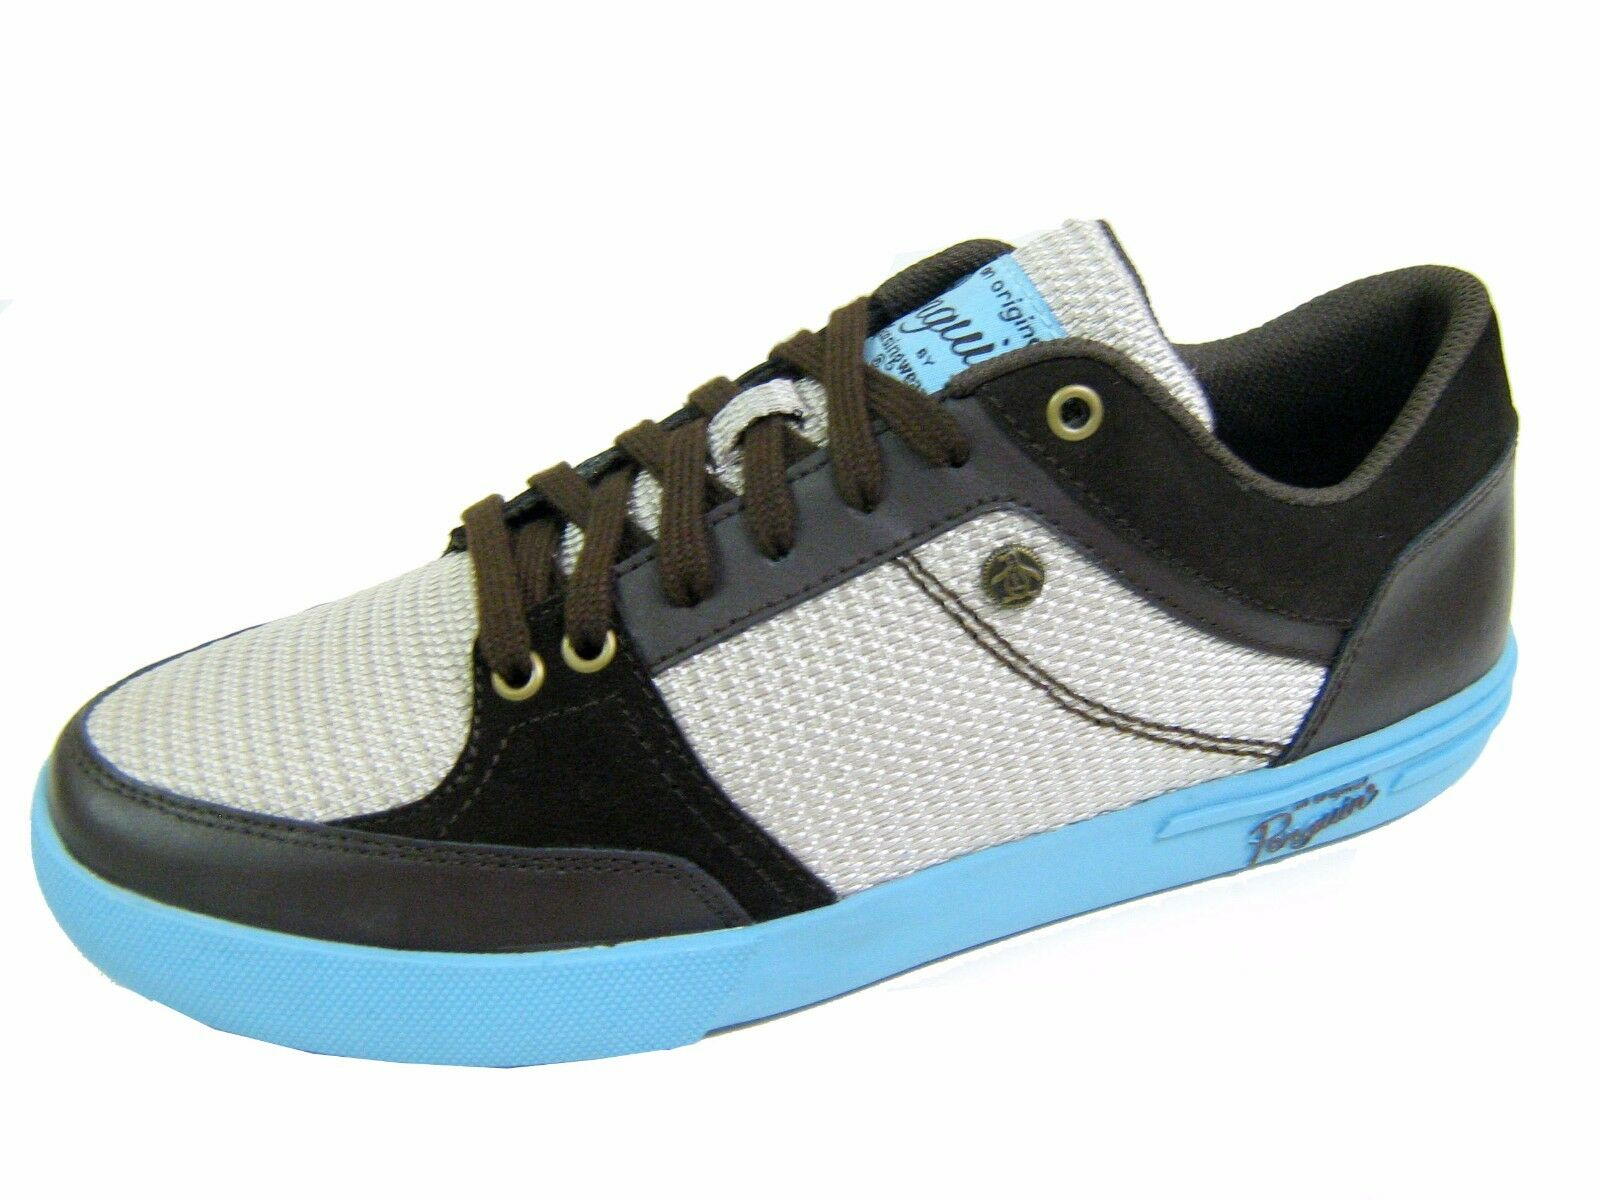 Original Penguin Men's shoes Boomer Fashion Sneakers Milky bluee Size 9